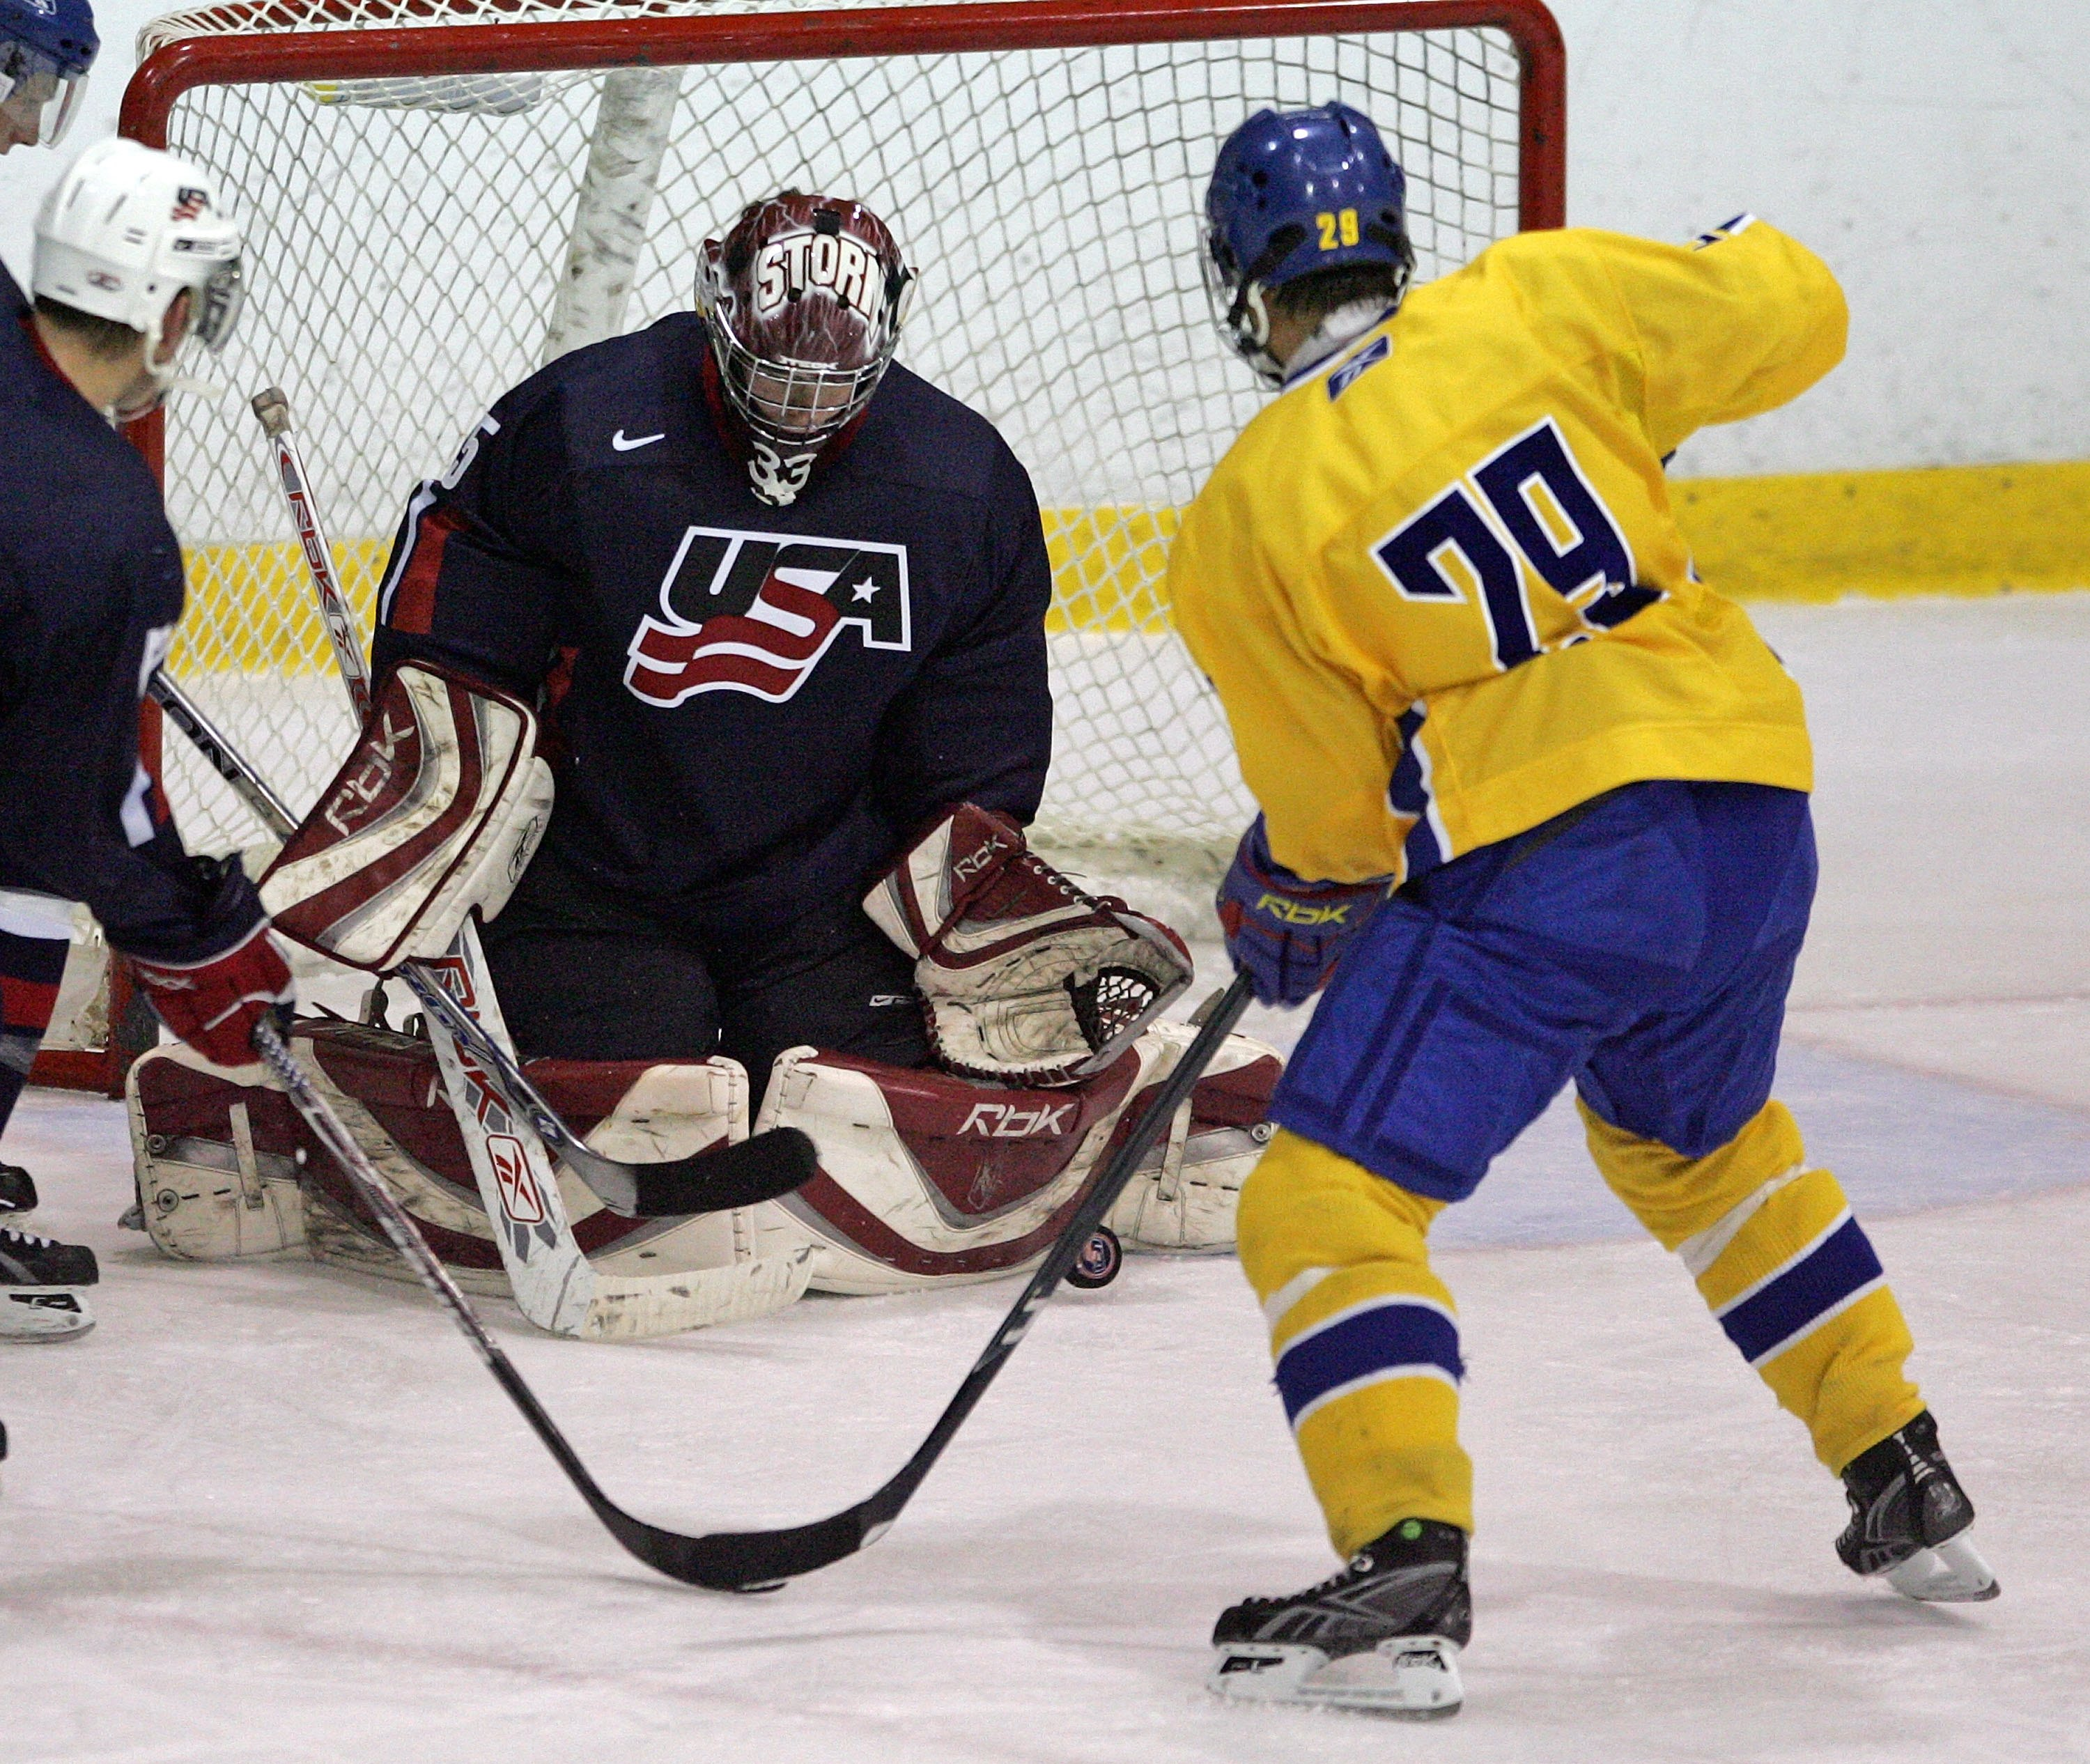 LAKE PLACID, NY - AUGUST 09:  Tom McCollum #35 of Team USA tends the net against Team Sweden at the USA Hockey National Junior Evaluation Camp on August 9, 2008 at the Olympic Center in Lake Placid, New York.  (Photo by Bruce Bennett/Getty Images)